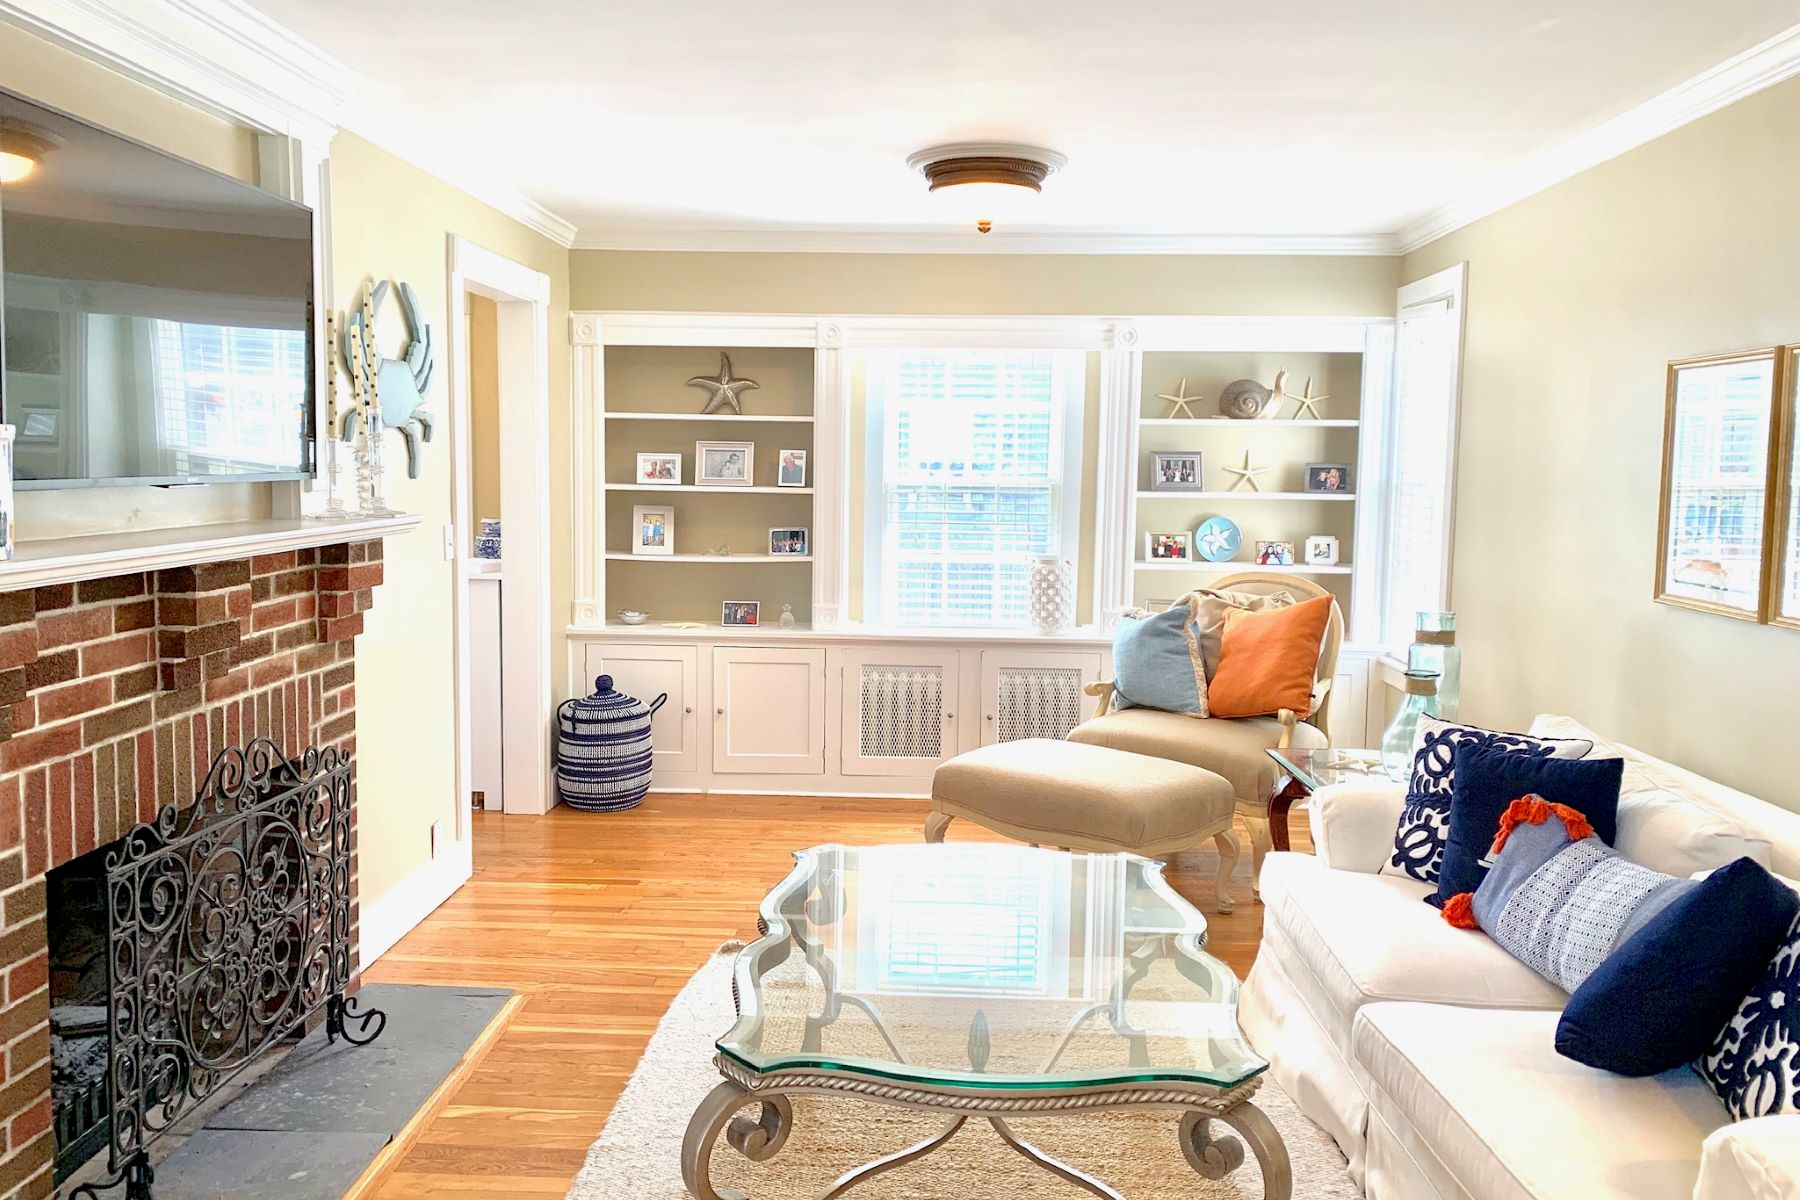 Additional photo for property listing at Adorable Colonial on Historic Hill 9 Brinley Street Newport, Rhode Island 02840 United States